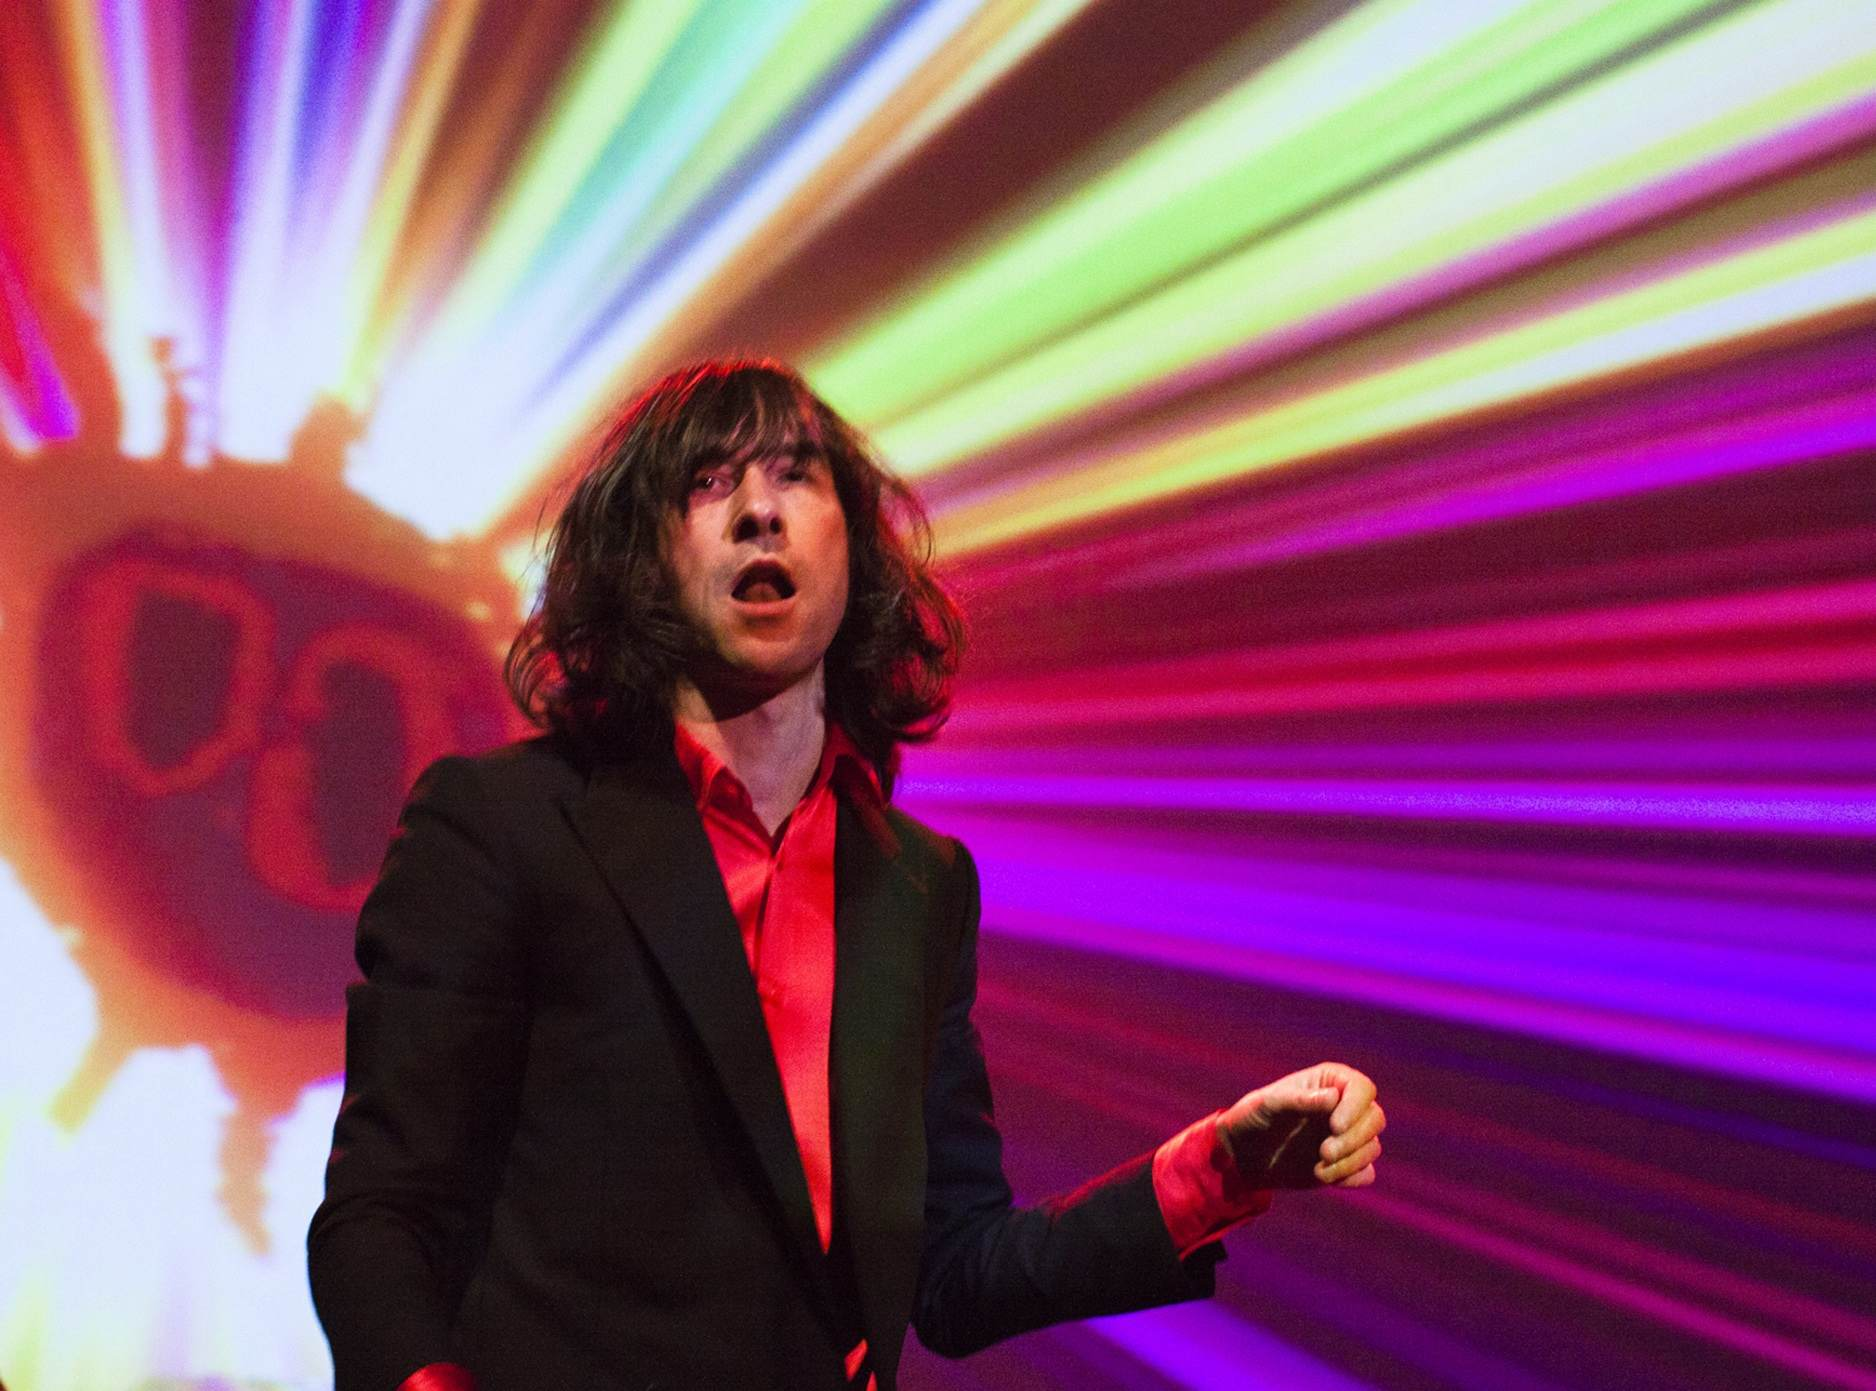 Primal Scream announce Australian tour, December 2012